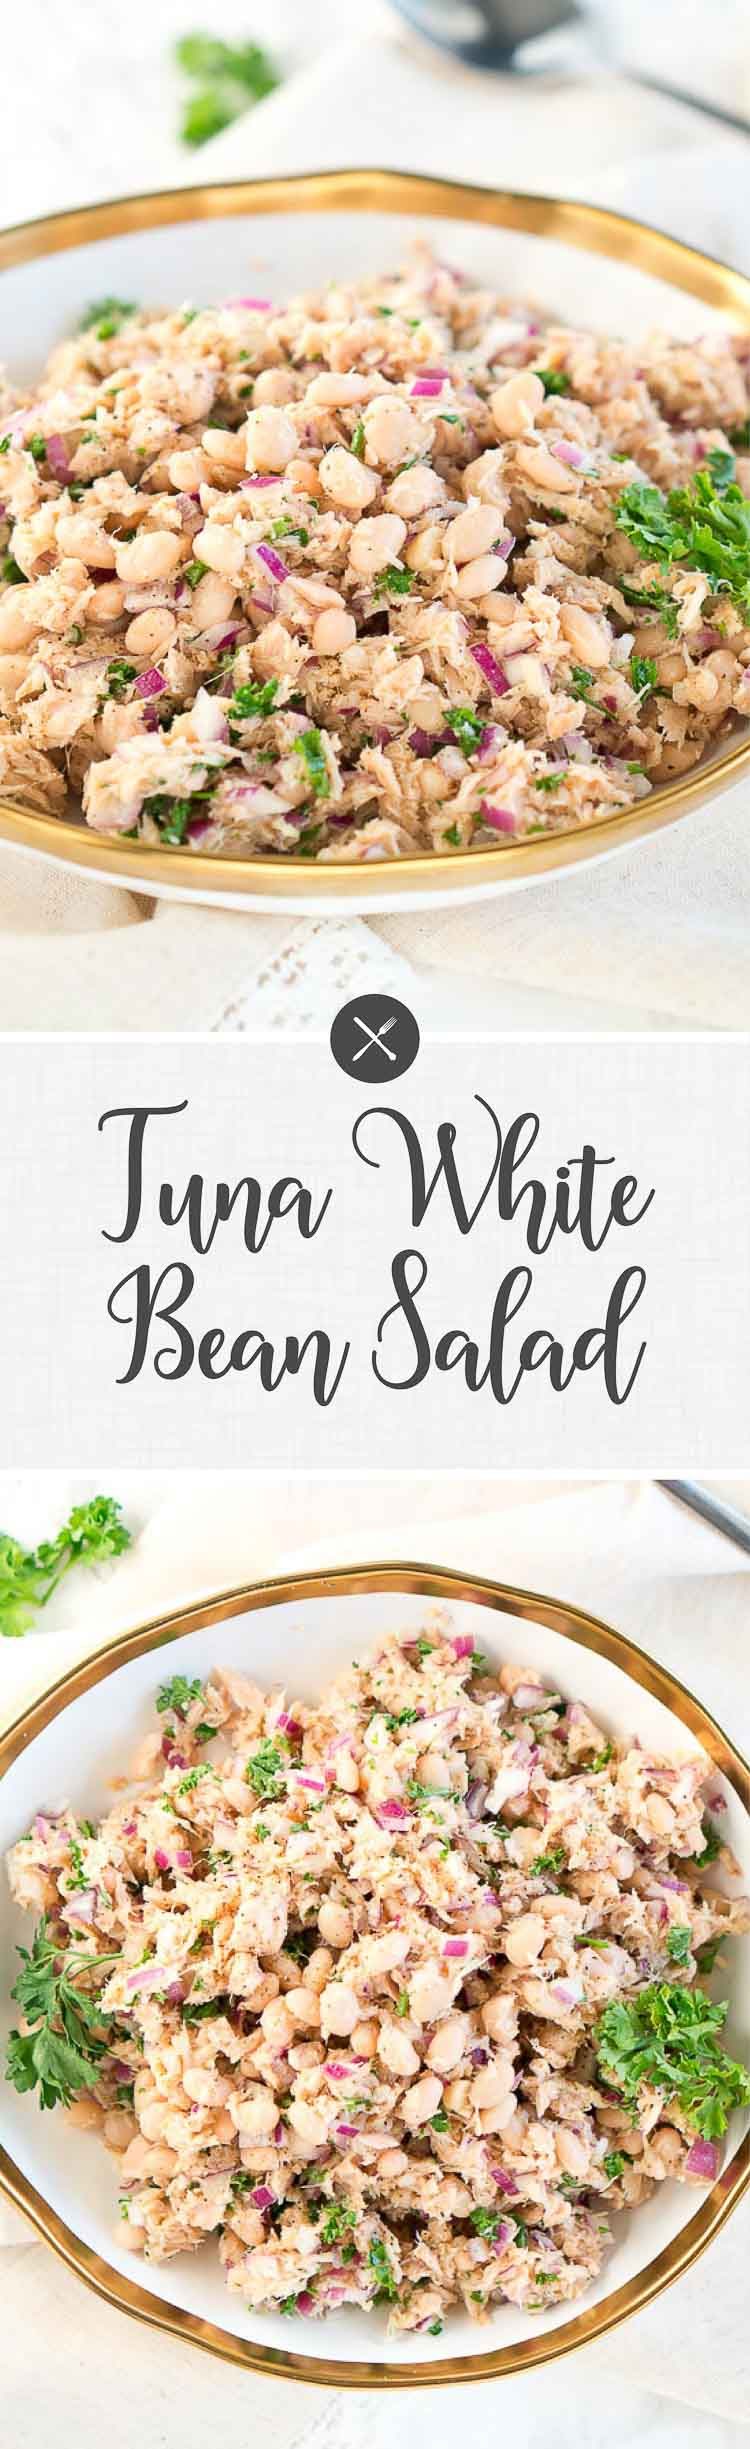 Here is a tasty way to transform an ordinary canned tuna into a delicious meal. This Tuna White Bean Salad is great for potlucks, perfect for a light lunch, and even an appetizer.It tastes wonderful with some gluten-free scoops. #tuna #salad #potluck #holiday #4thofjuly #MemorialDay #LaborDay #healthy